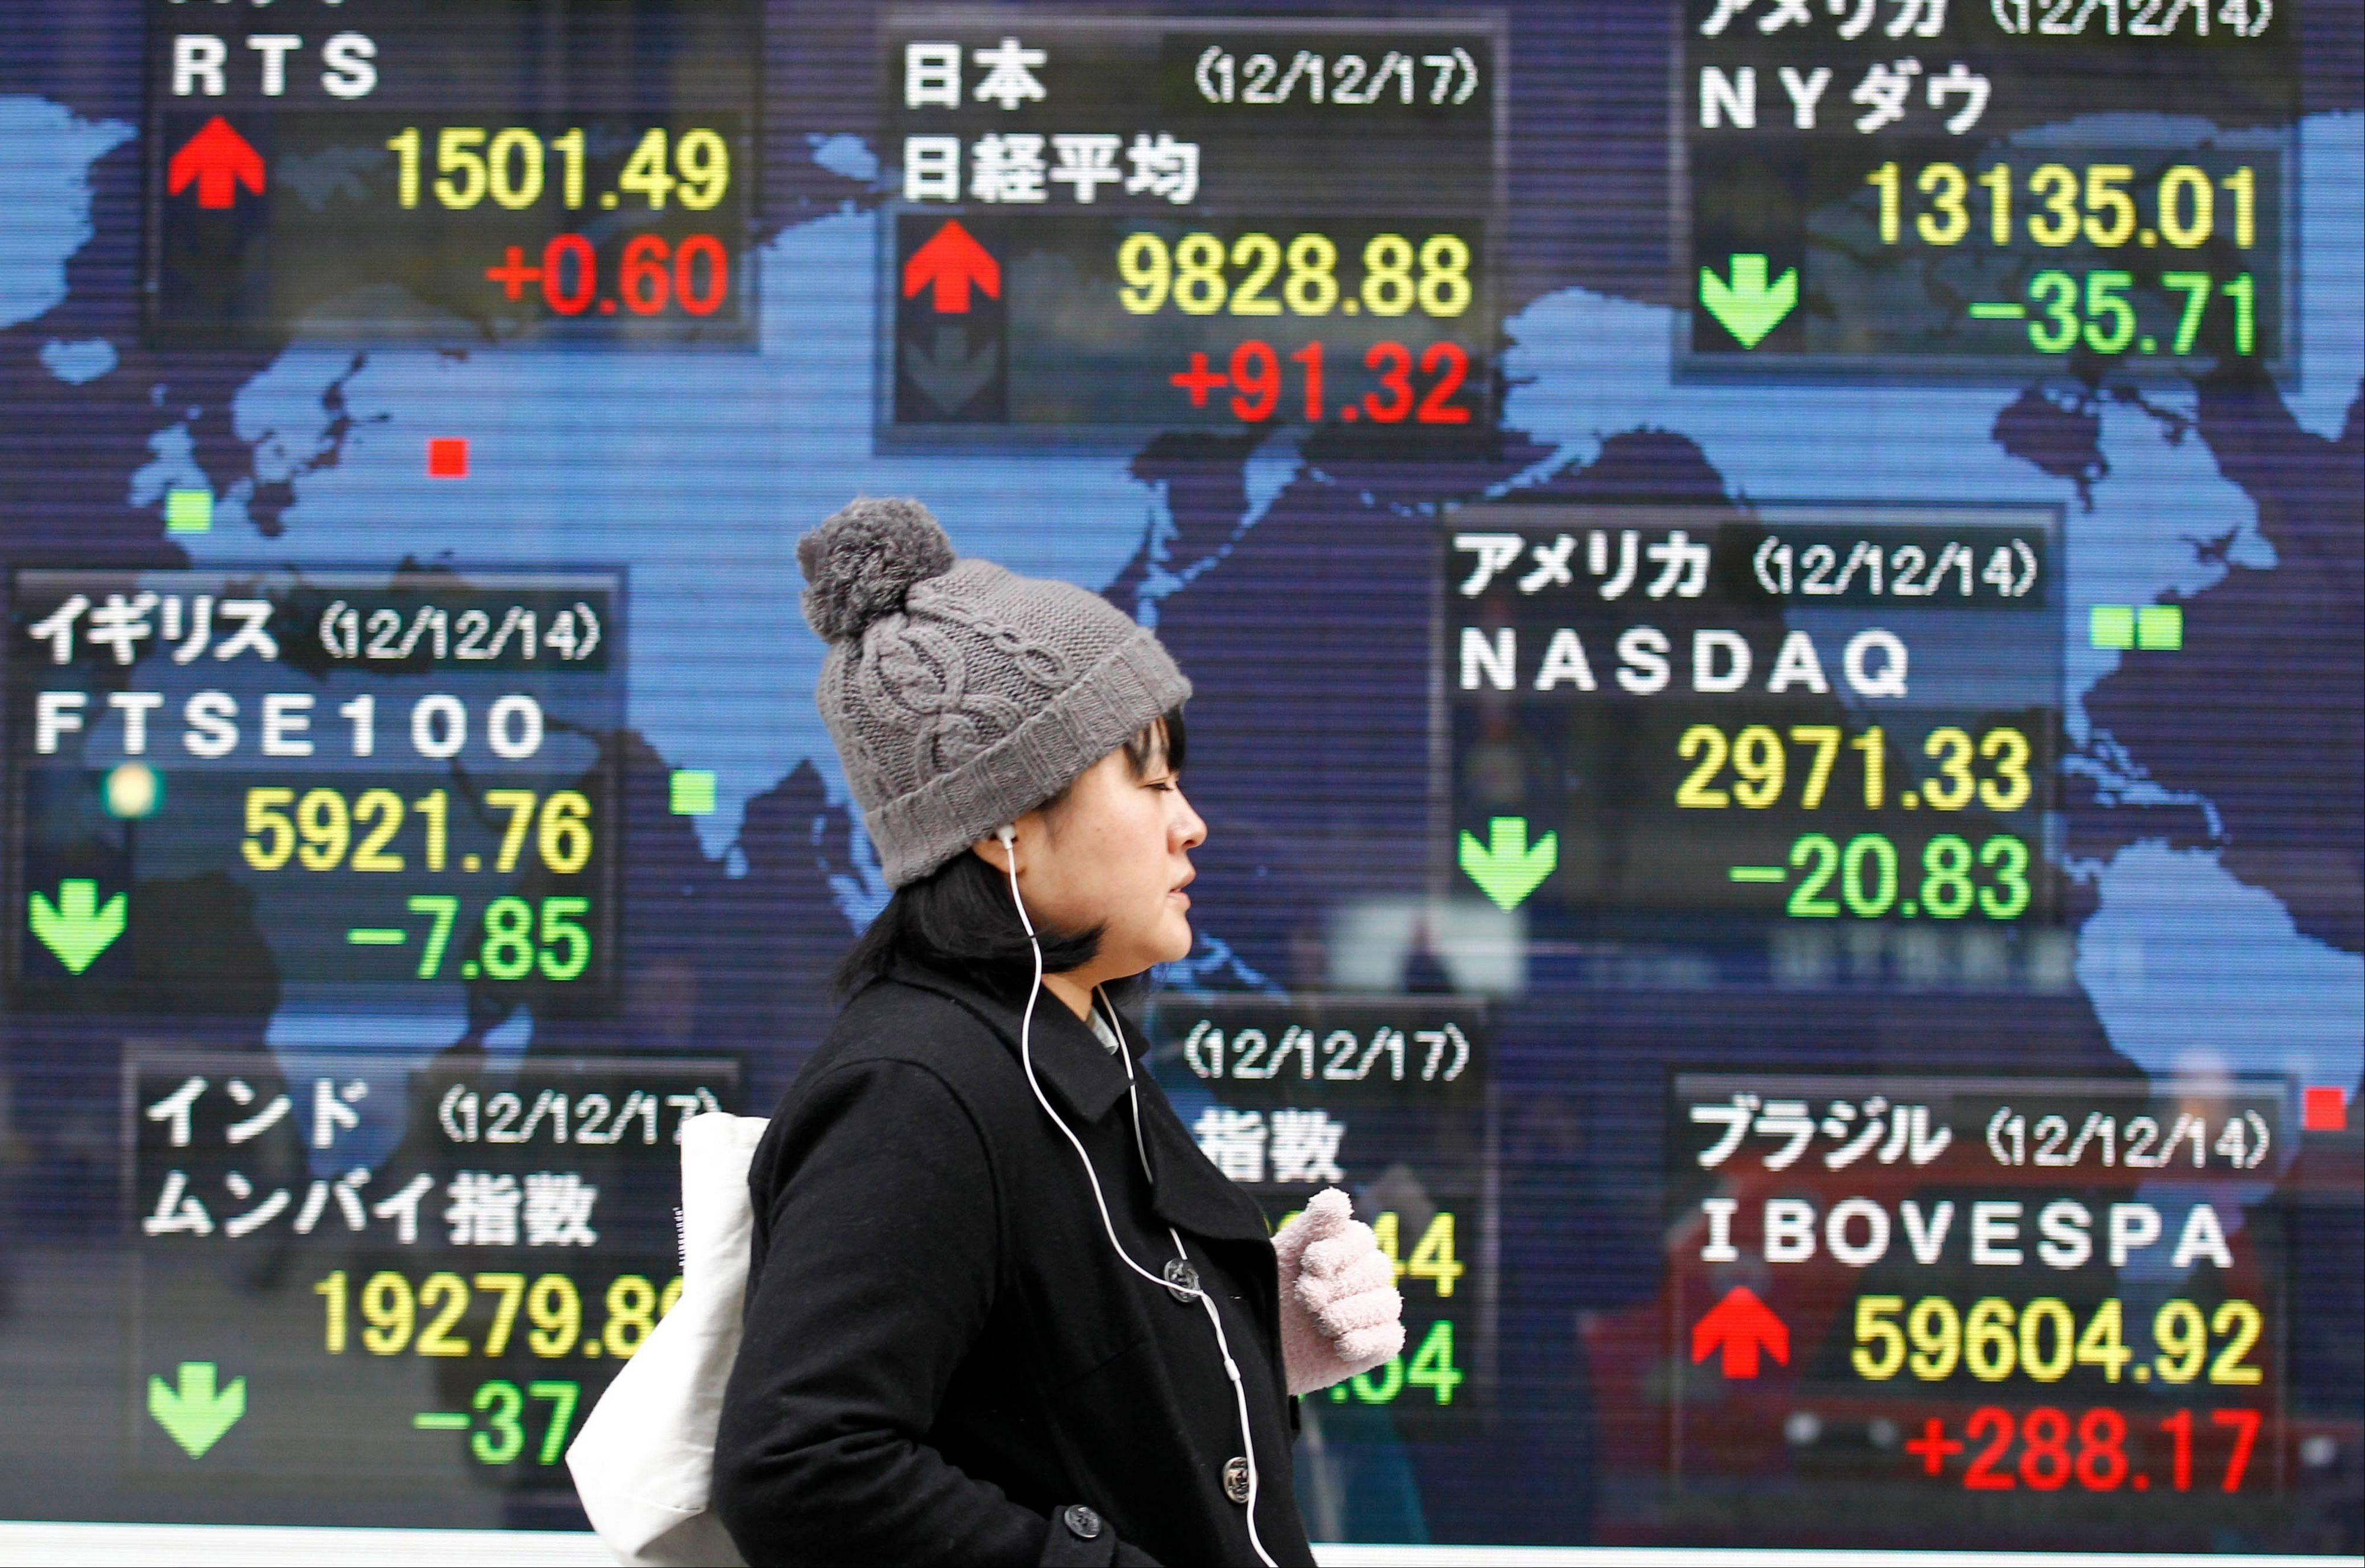 A woman walks by a world stock index display of a securities firm in Tokyo Monday, Dec. 17, 2012. Japan's Nikkei 225 index jumped 1.6 percent to 9,891.15, its highest level since April, after the country's Liberal Democratic Party swept back into power at weekend elections.